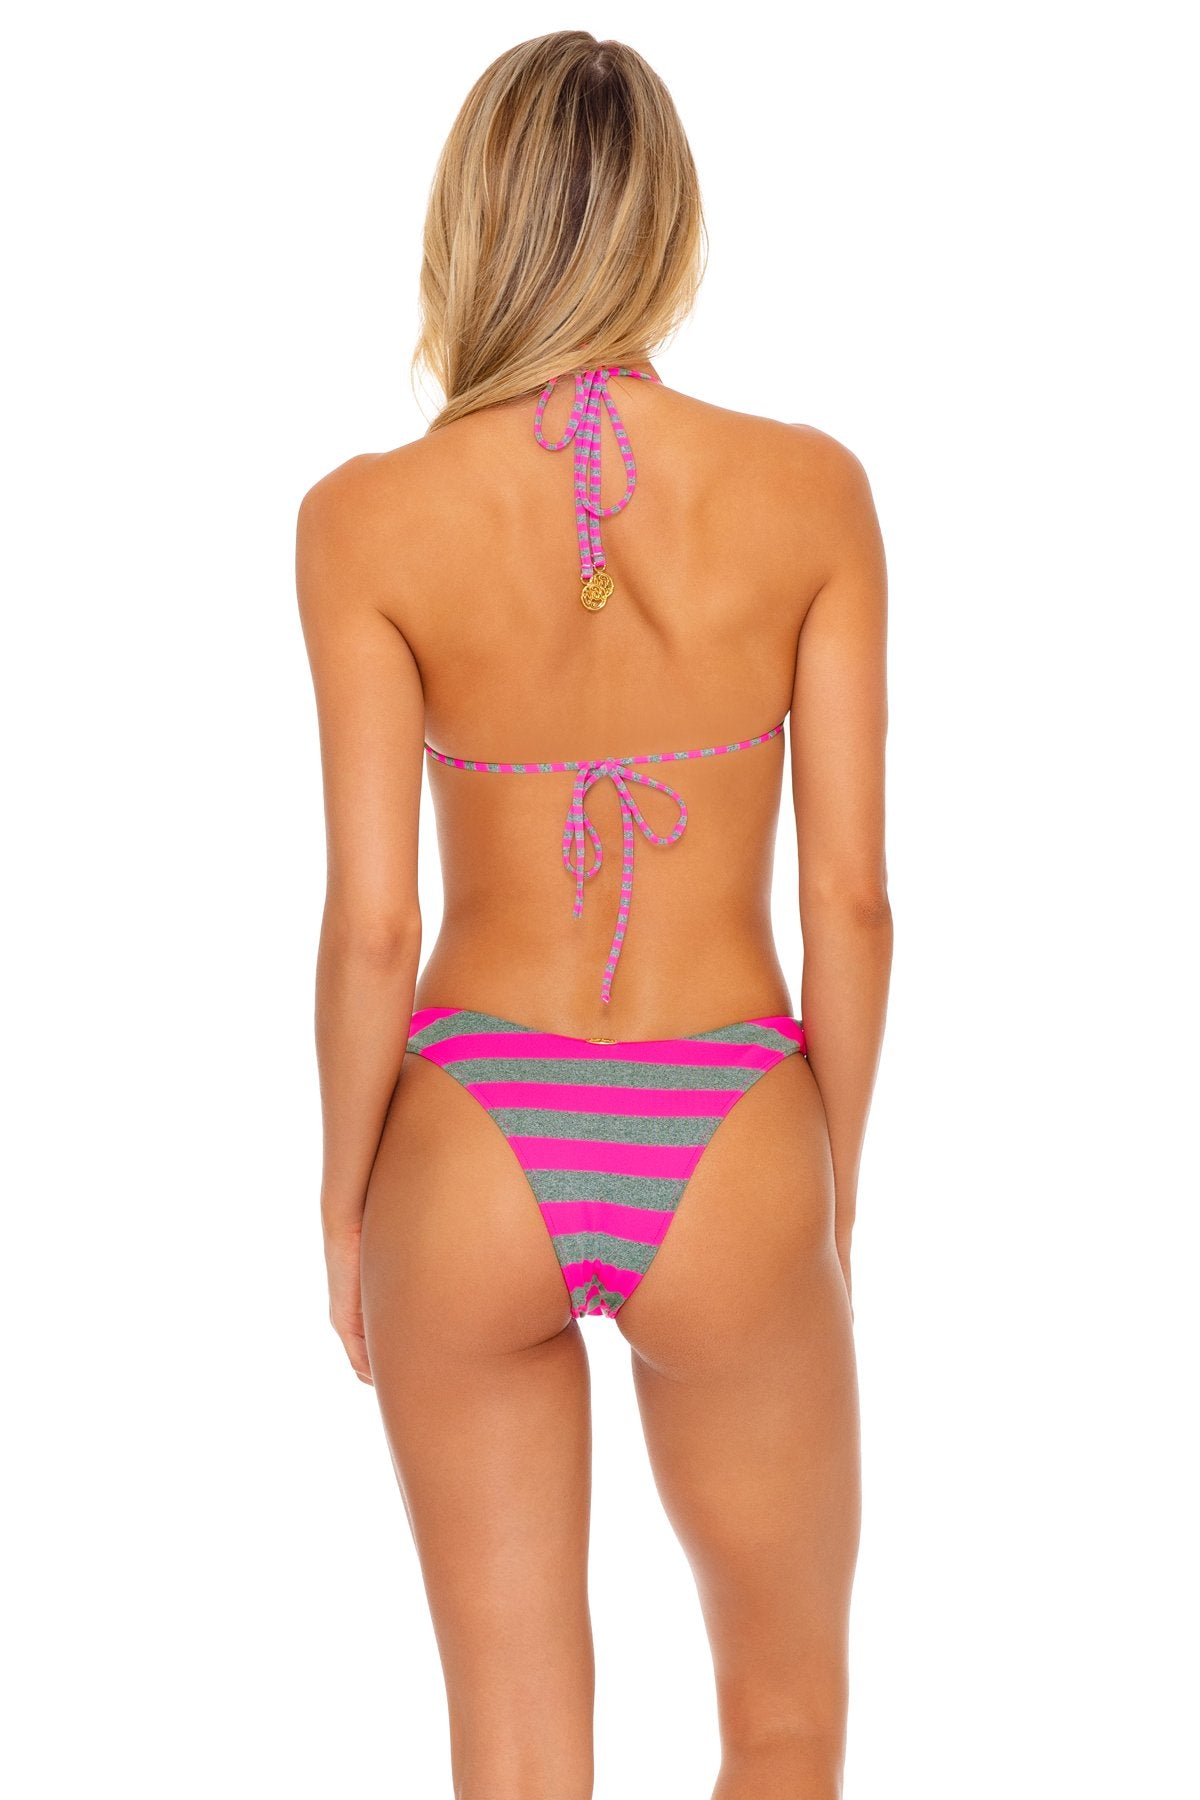 TIME TO FIESTA - Bandeau Top & High Leg Bottom • Neon Pink